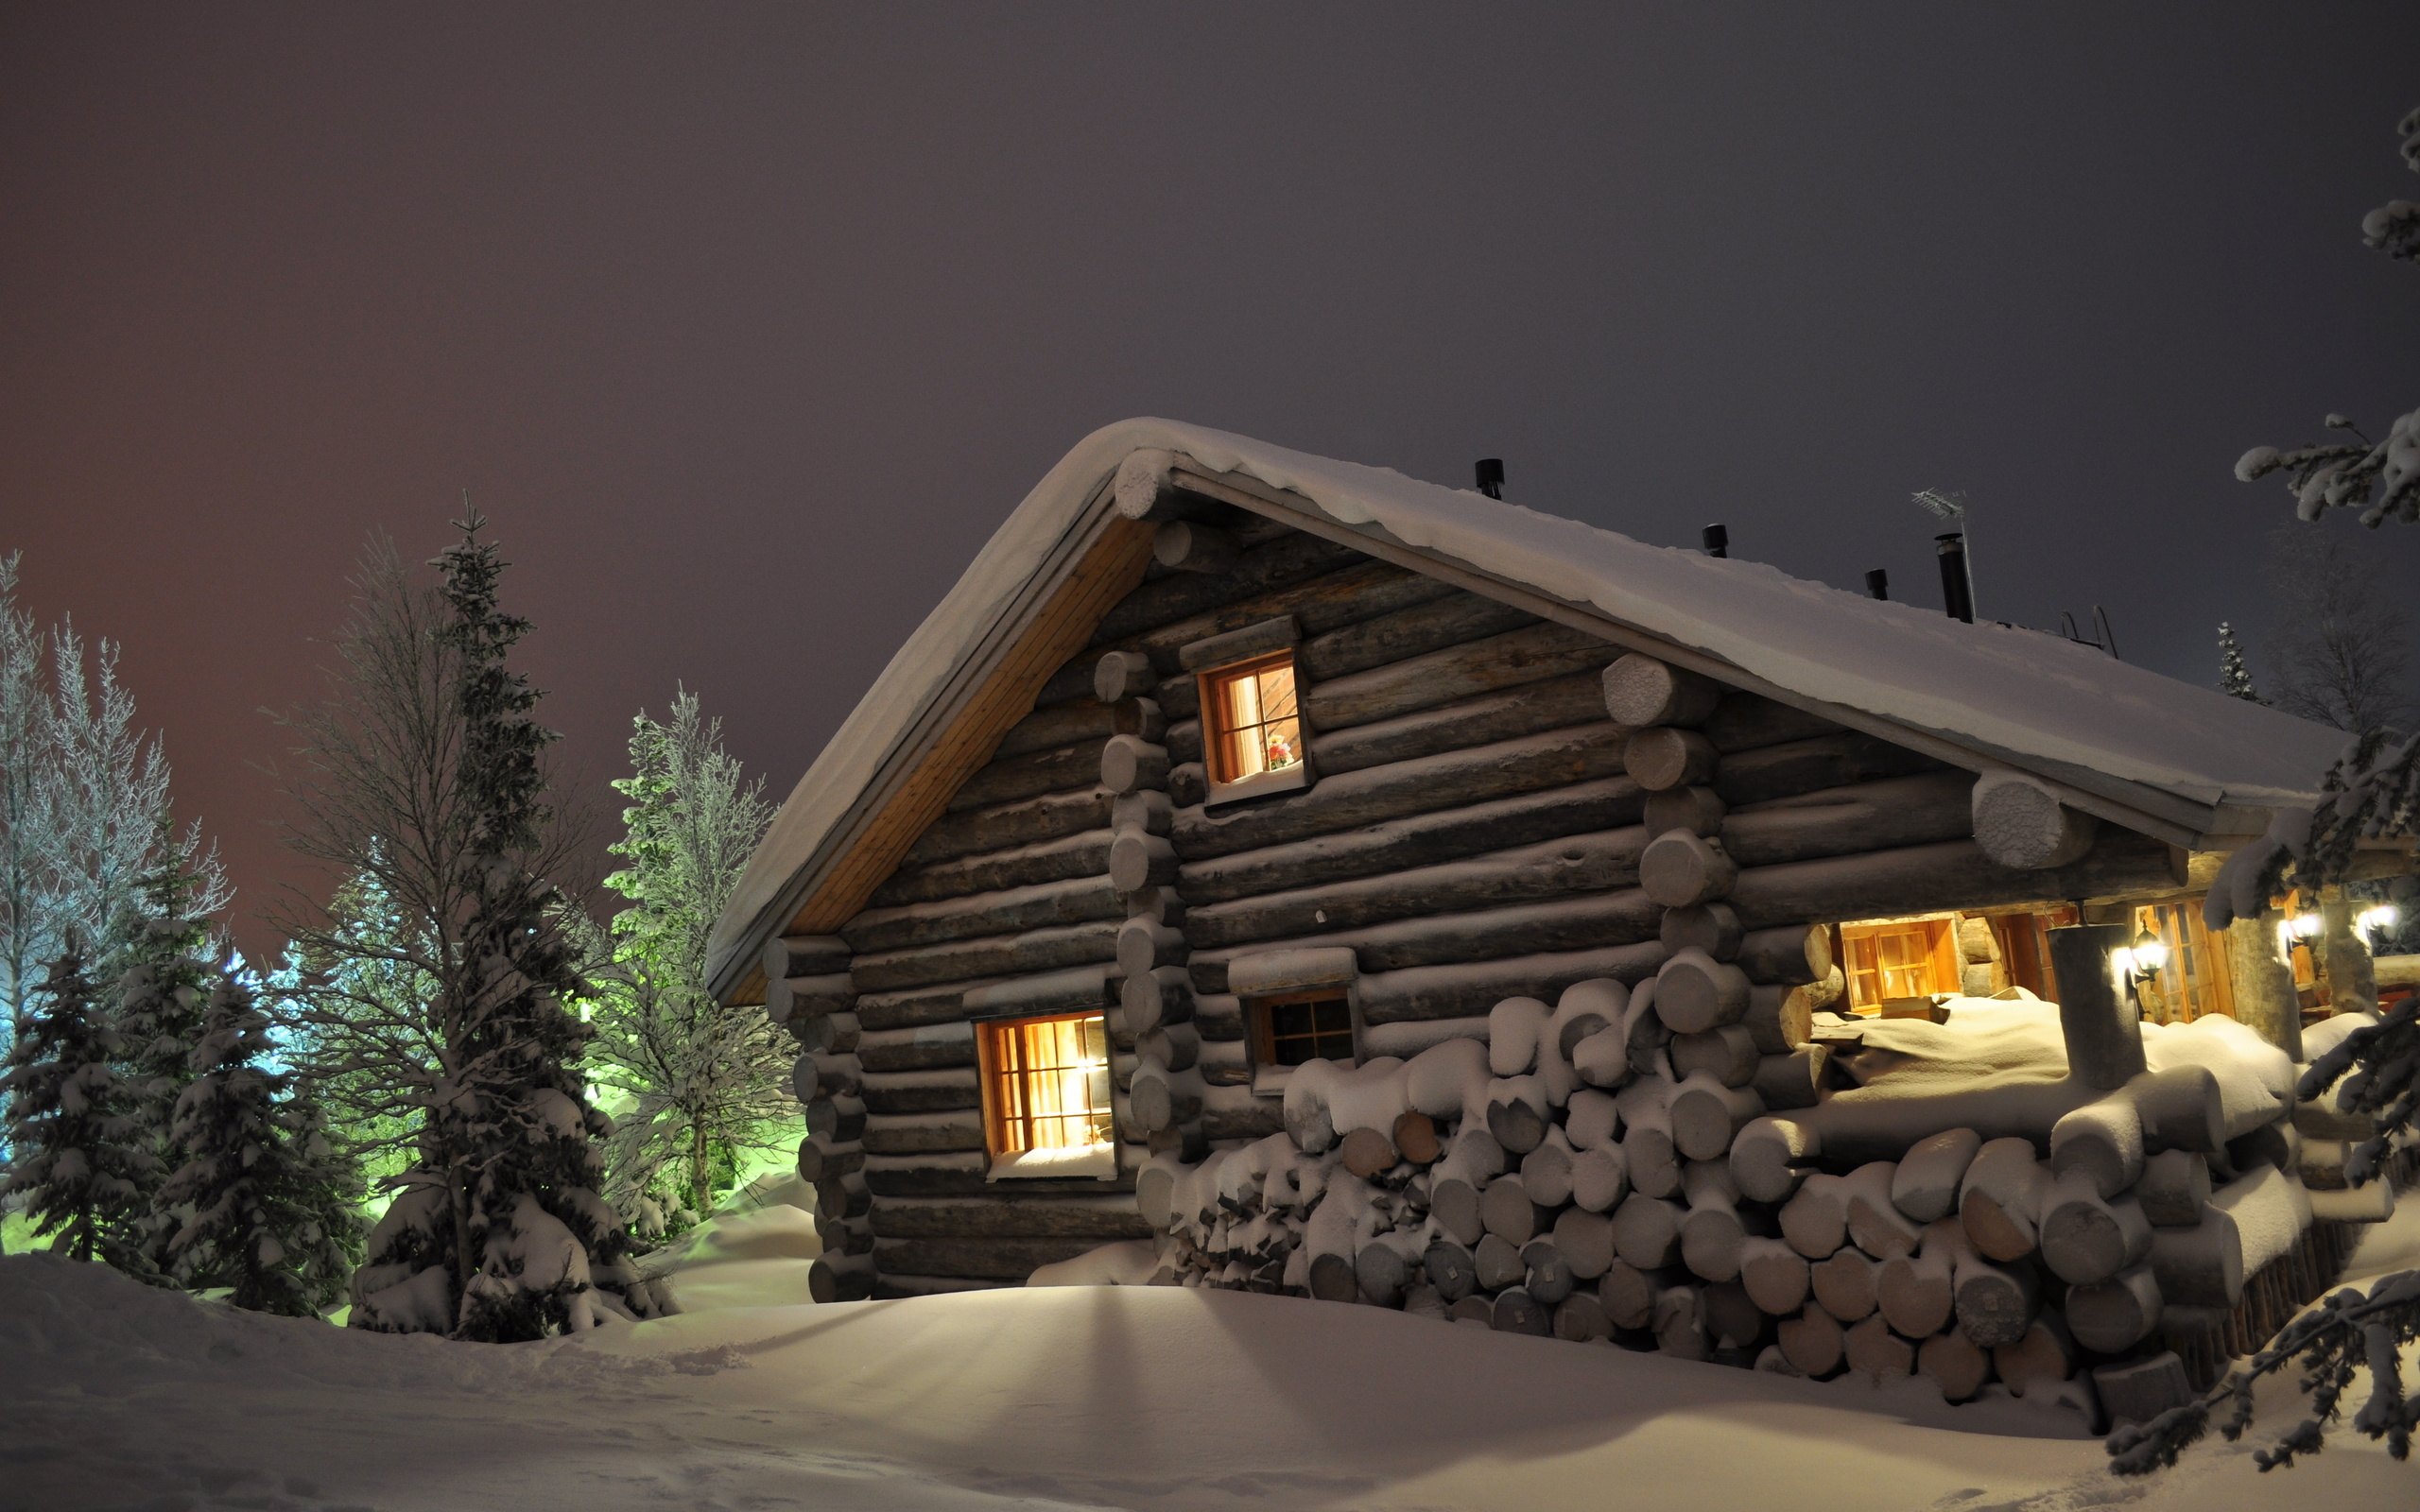 Wallpaper winter snow drifts log cabin wood night eating winter 2560x1600